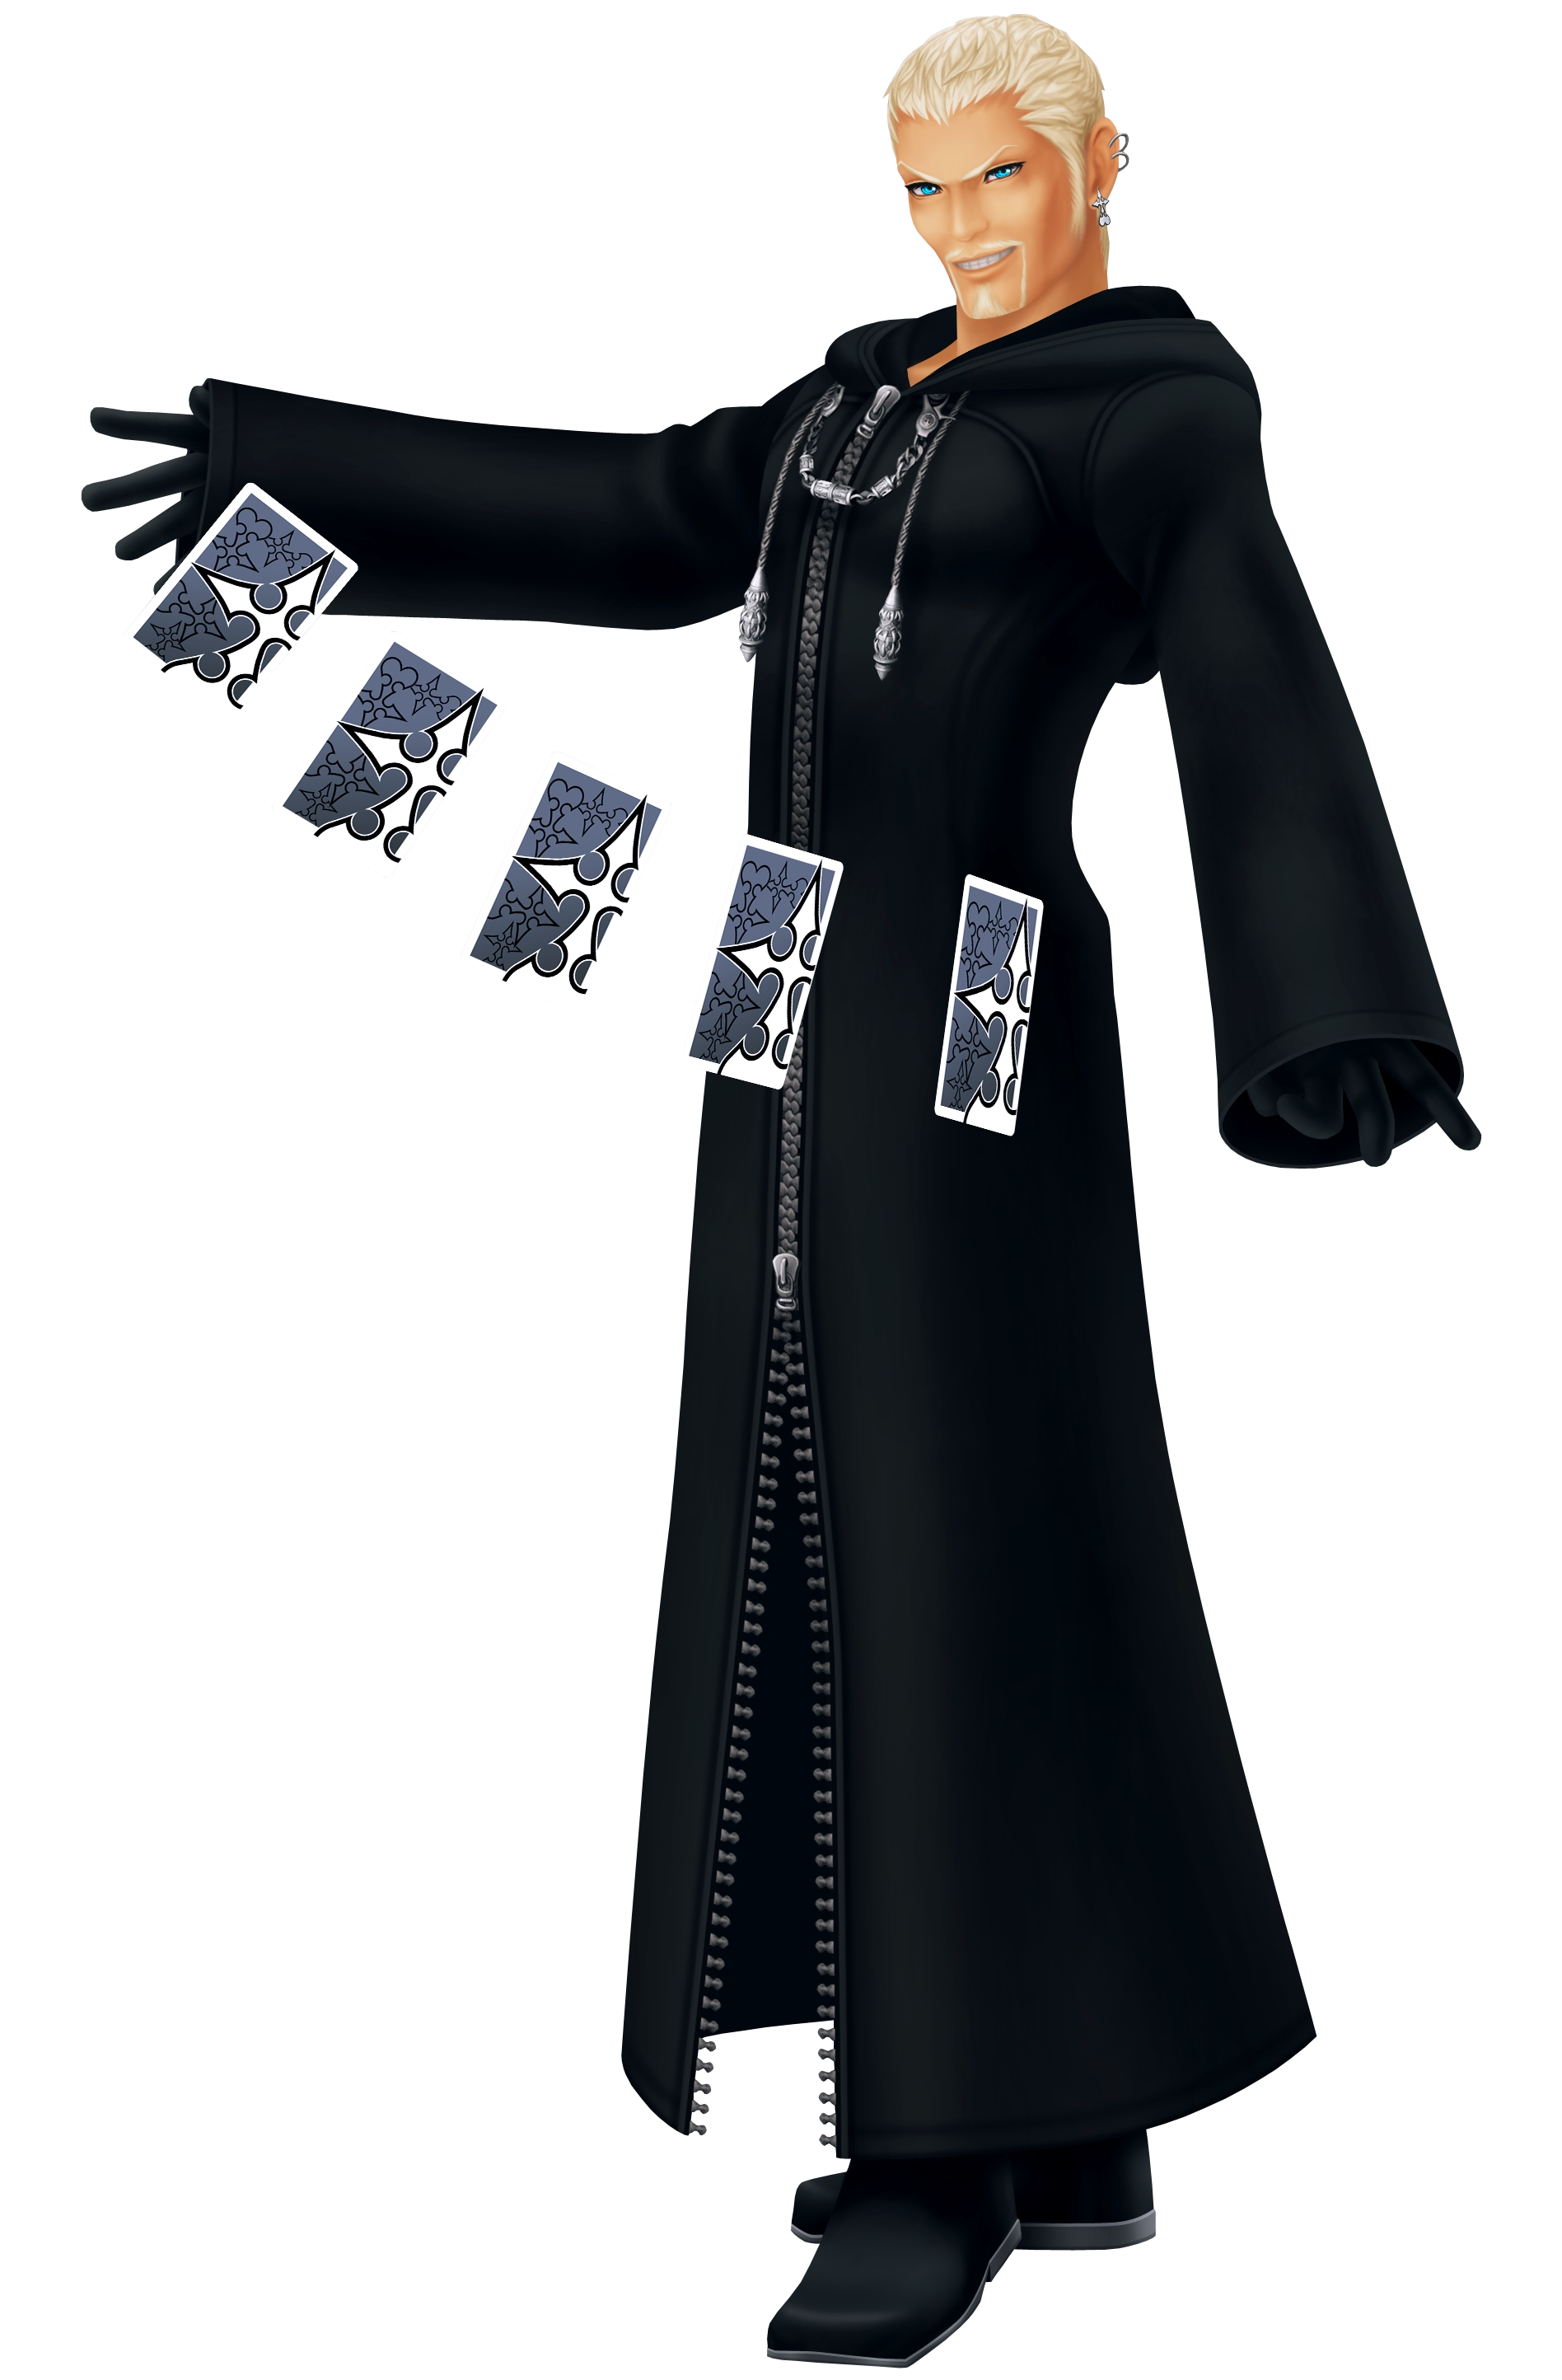 http://vignette4.wikia.nocookie.net/kingdomhearts/images/3/3c/Luxord_KHD.png